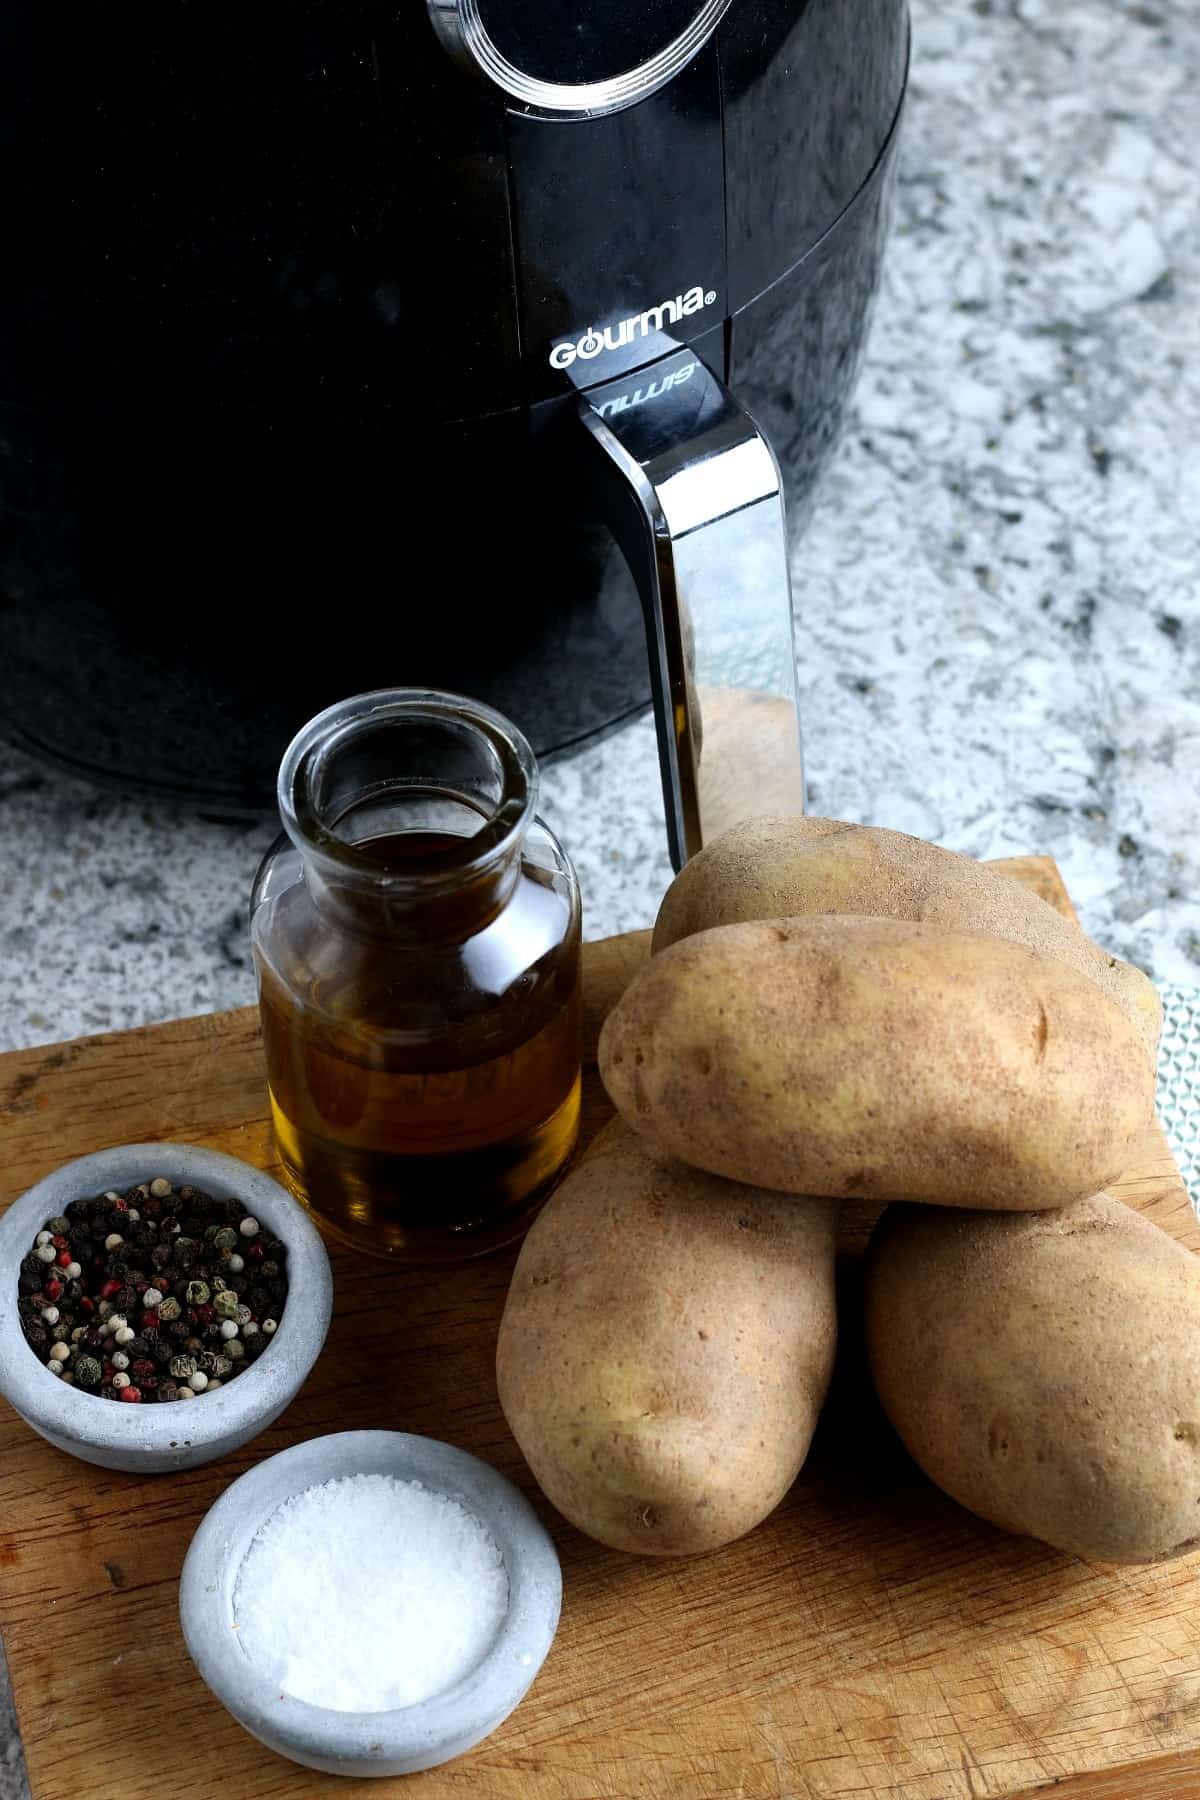 Four simple ingredients including potatoes and olive oil sitting on a cutting board in front of an air fryer.